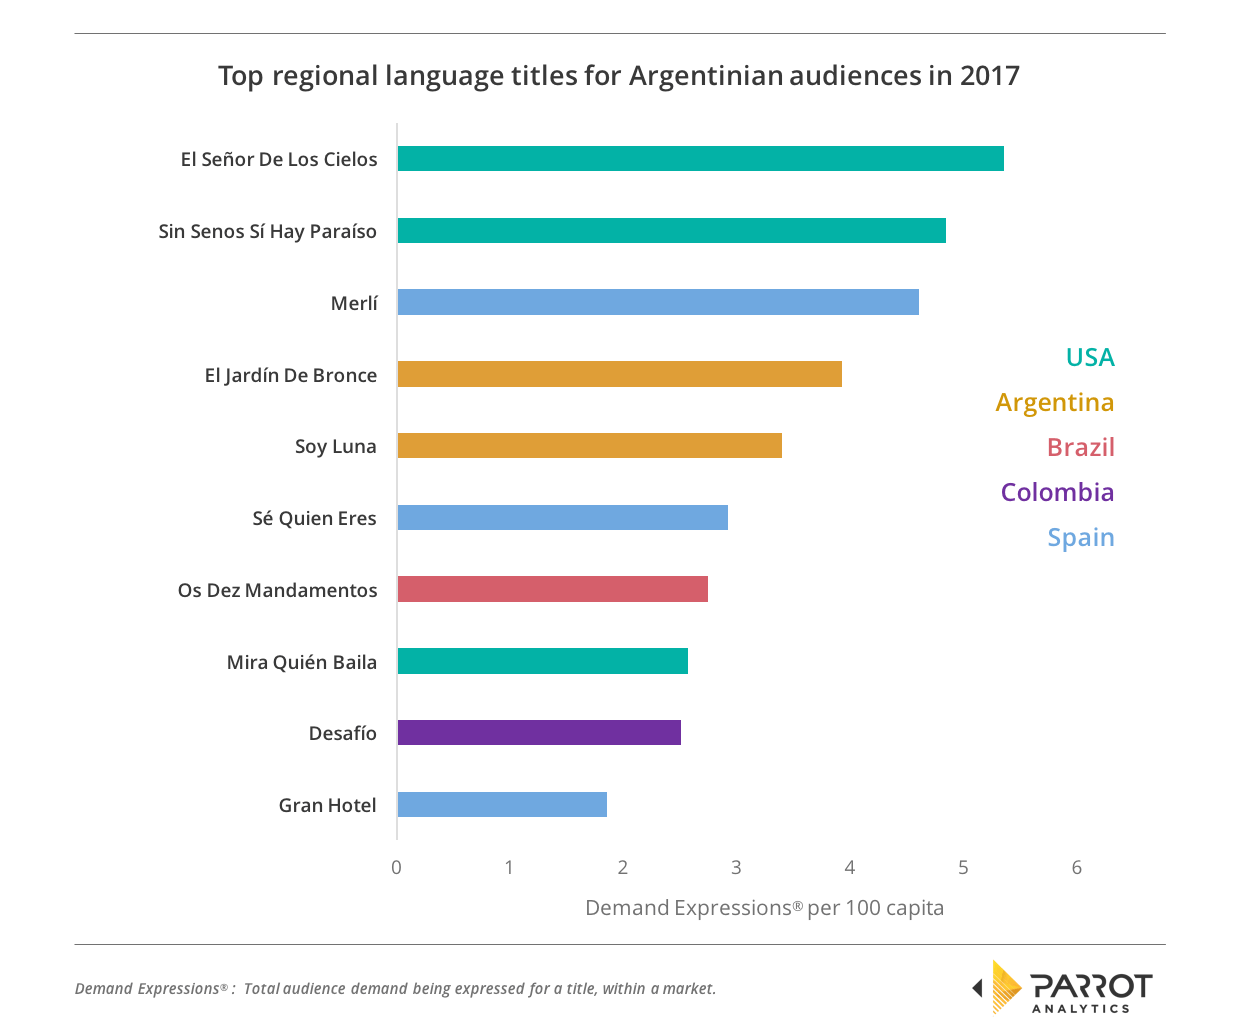 Latin America: Regional Differences in TV Content Popularity